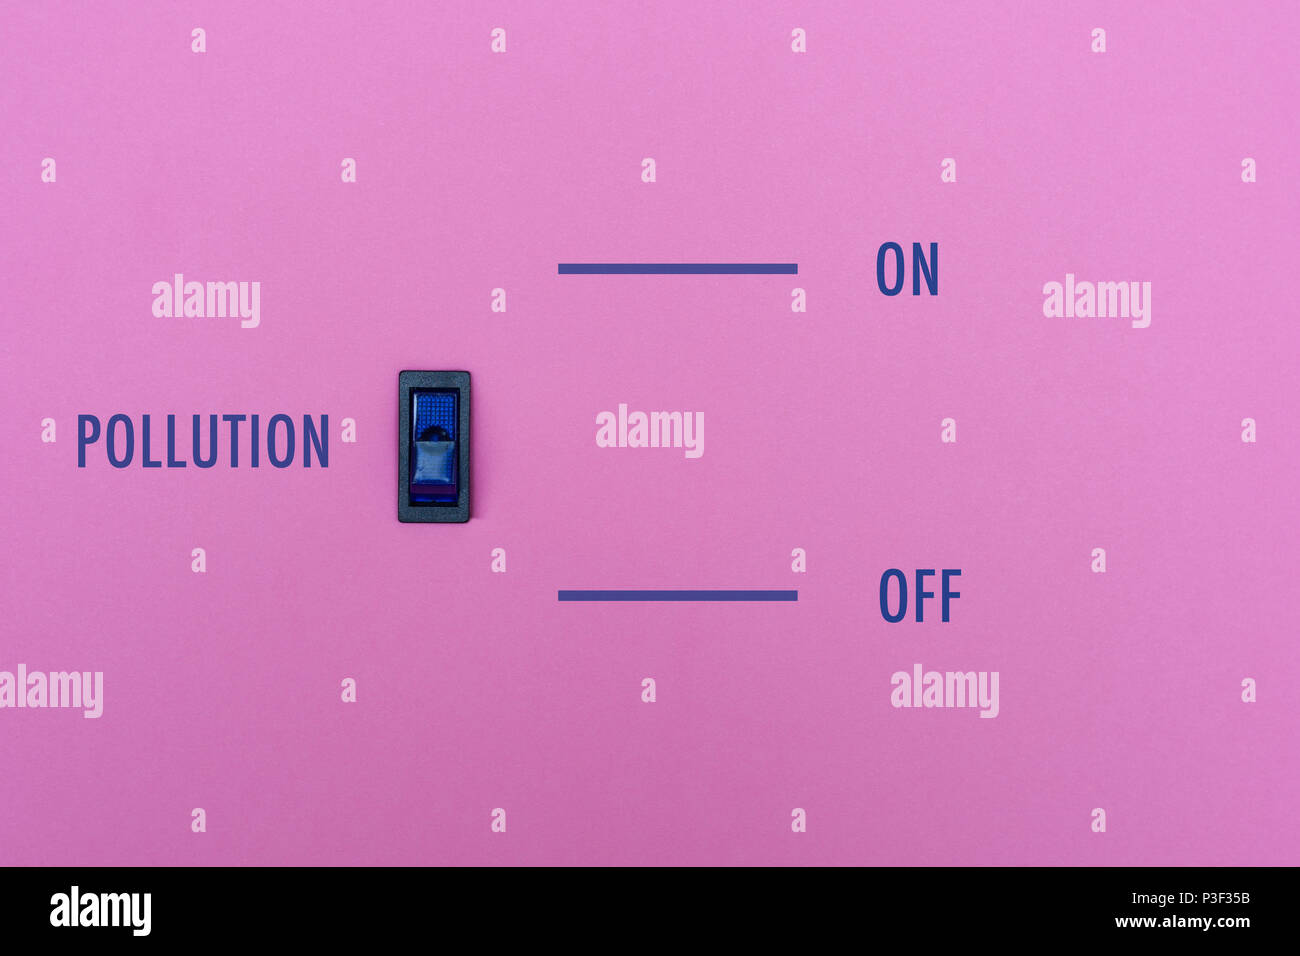 Pollution title on a pink wall with a blue symbol switch. We can stop the pollution in simple way? On/off toggle the pollution. Concept photo. - Stock Image